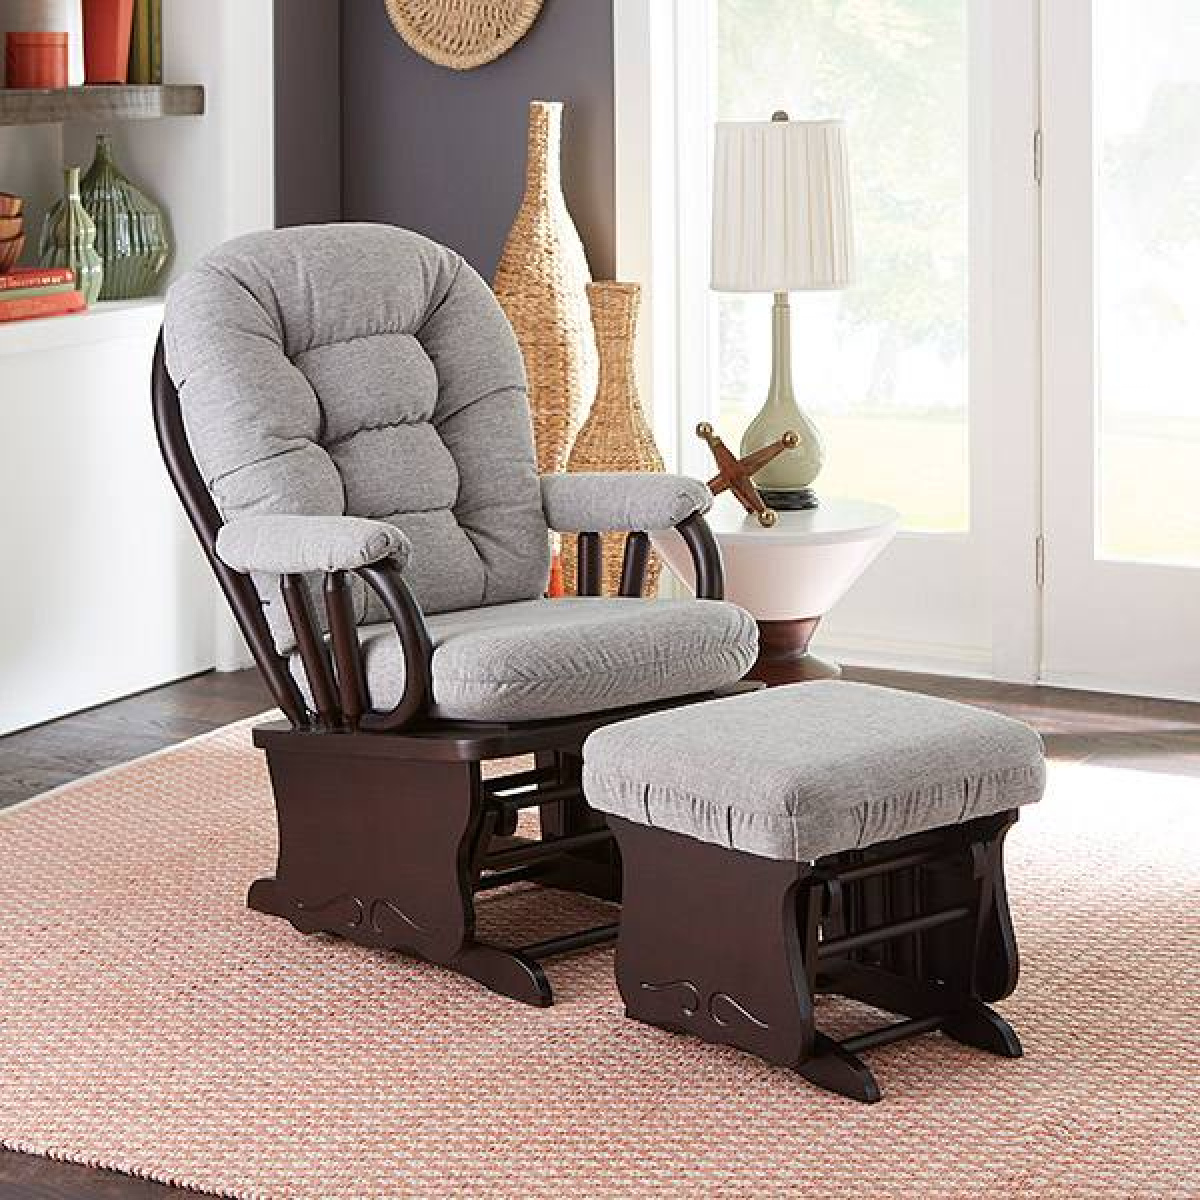 Swivel-and-glider-chairs-. +110 Unique Living Room Furniture Pieces That Amaze Everyone